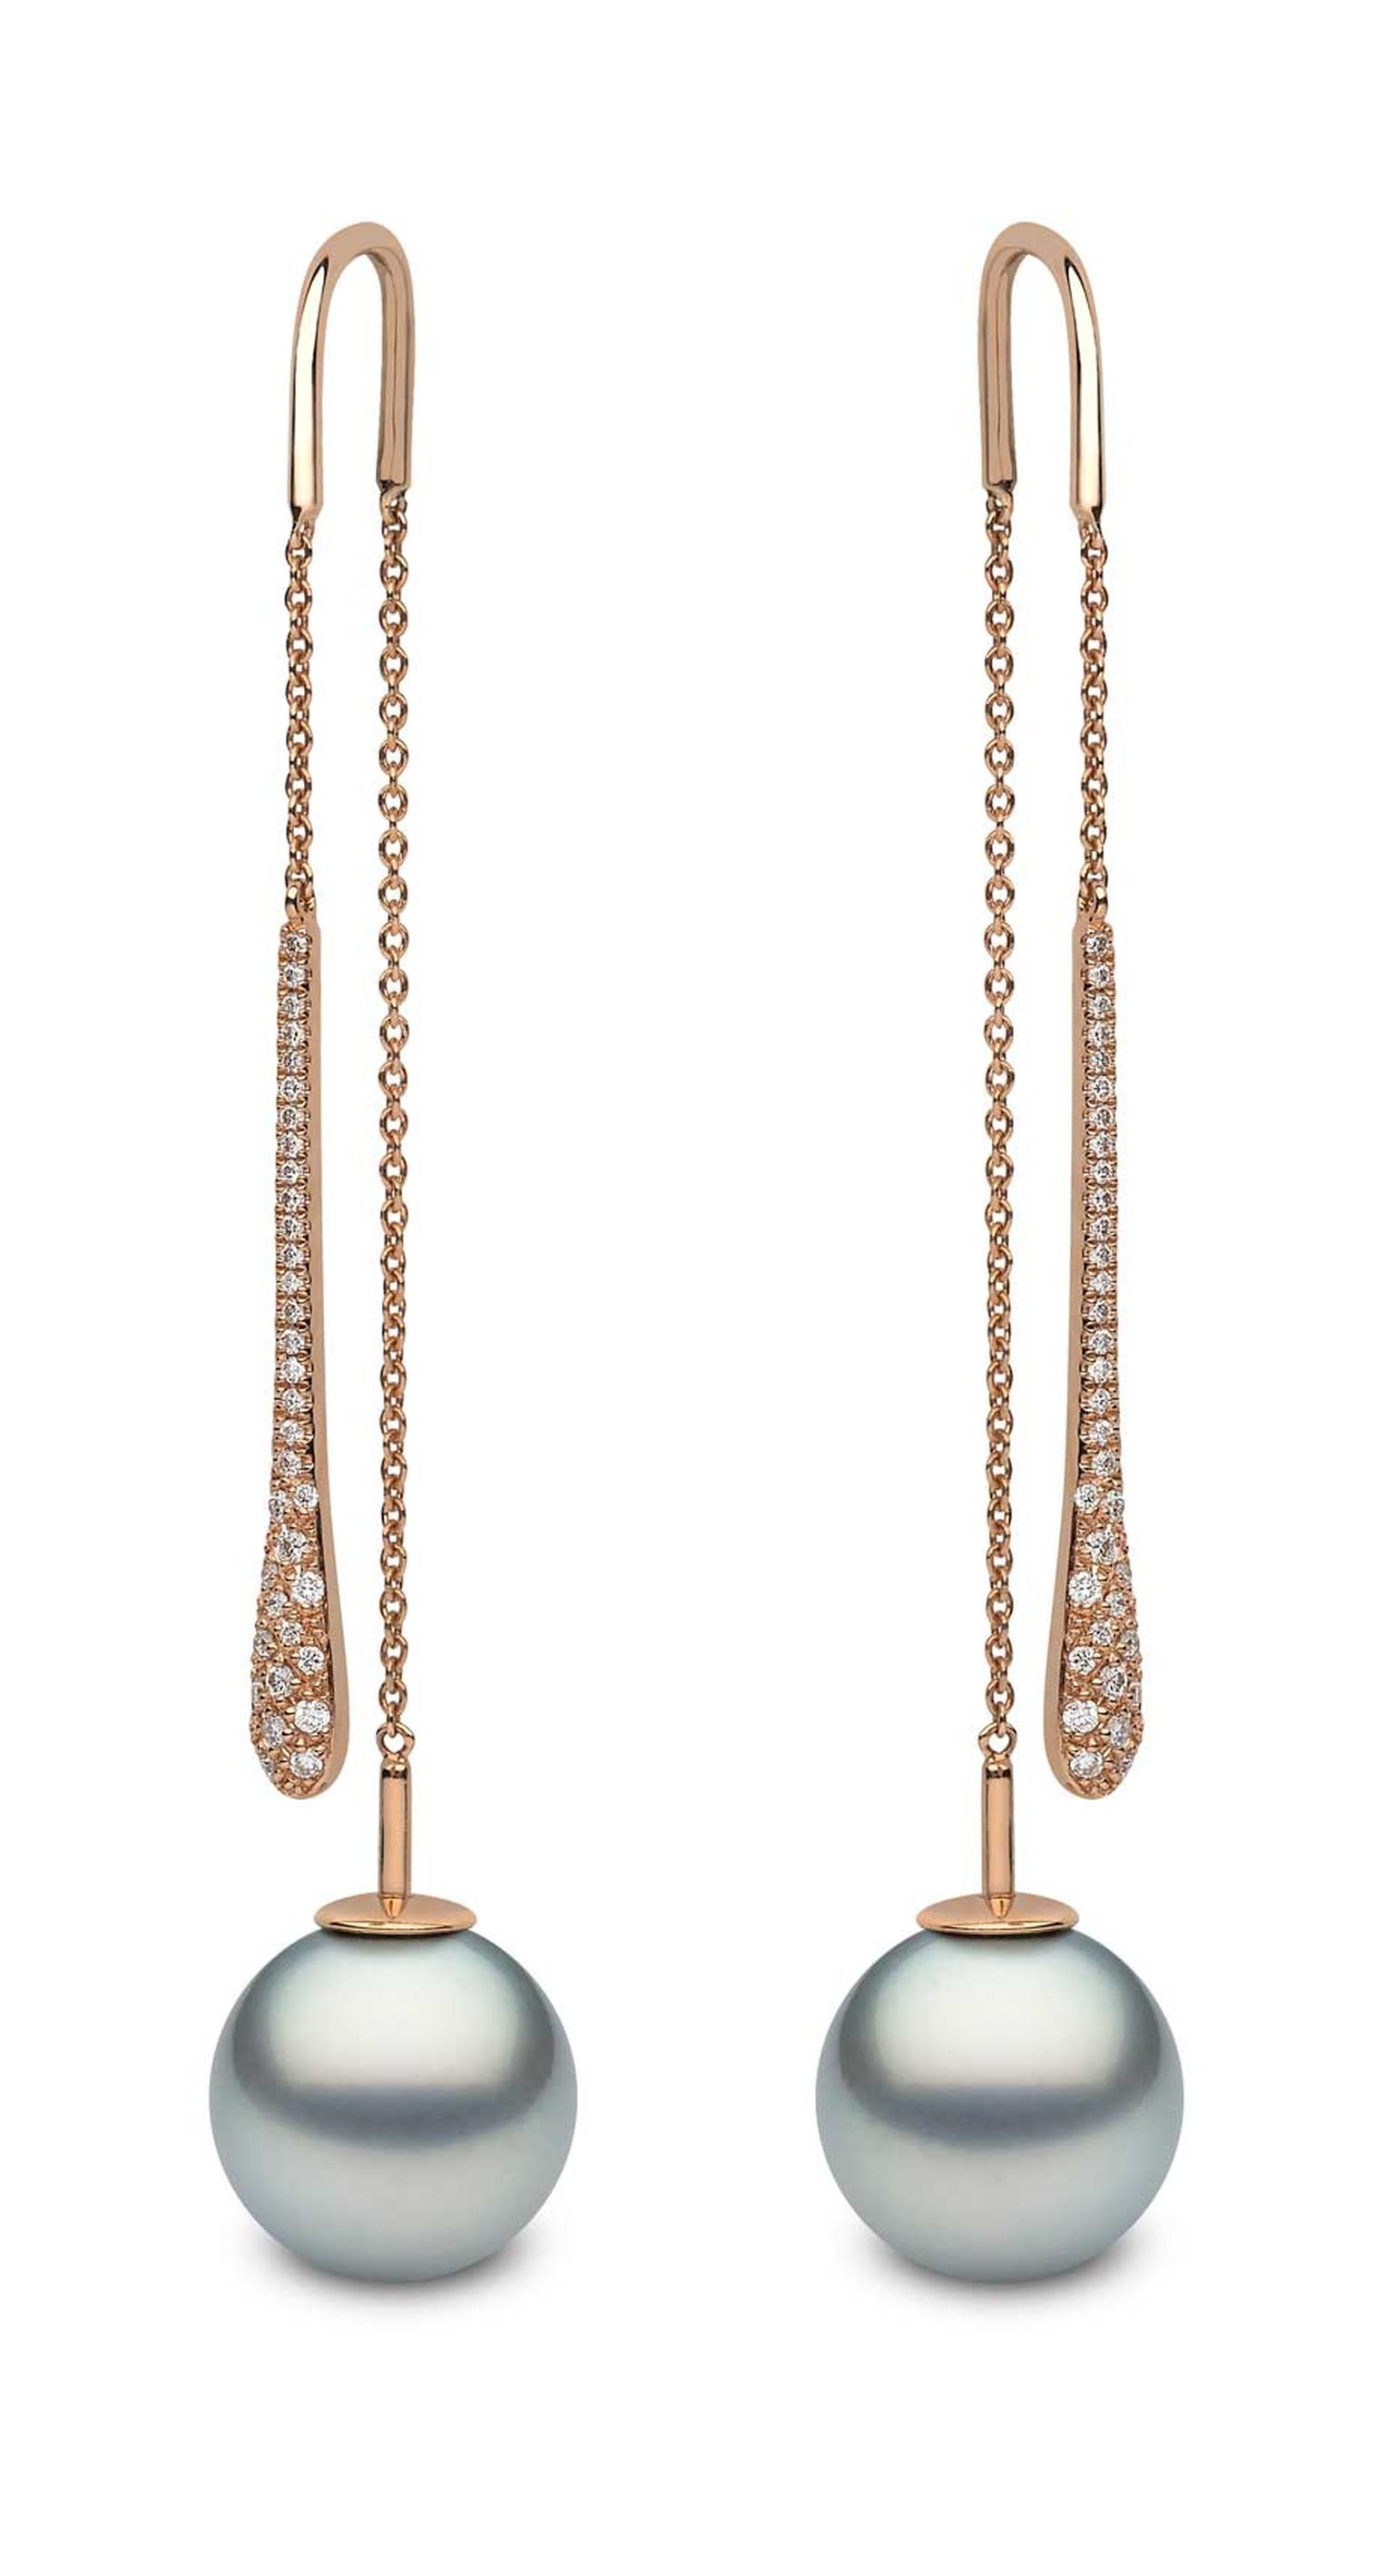 Rose gold earrings featuring diamonds and 12mm-13mm Tahitian pearls from YOKO London.